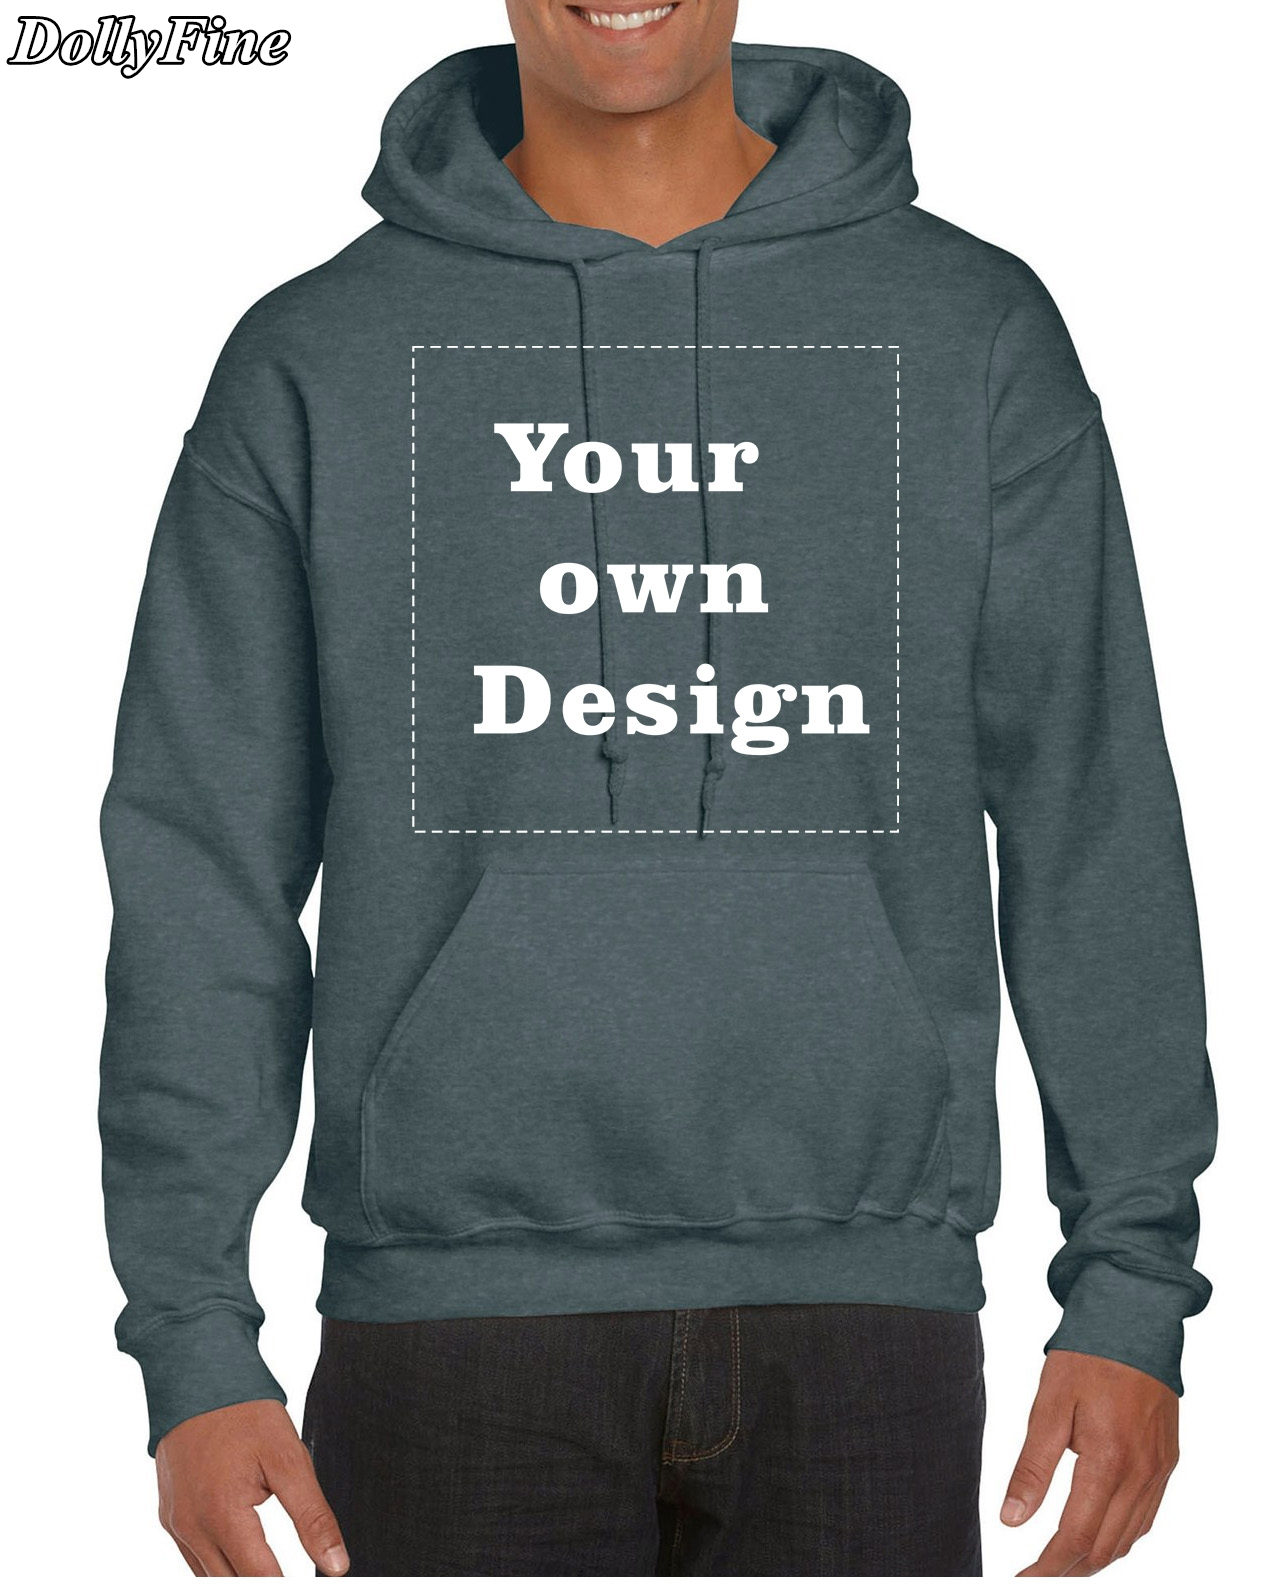 Design your own t shirt hoodie - Dollyfine Customized Men S Hoodies Print Your Own Design High Quality Diy